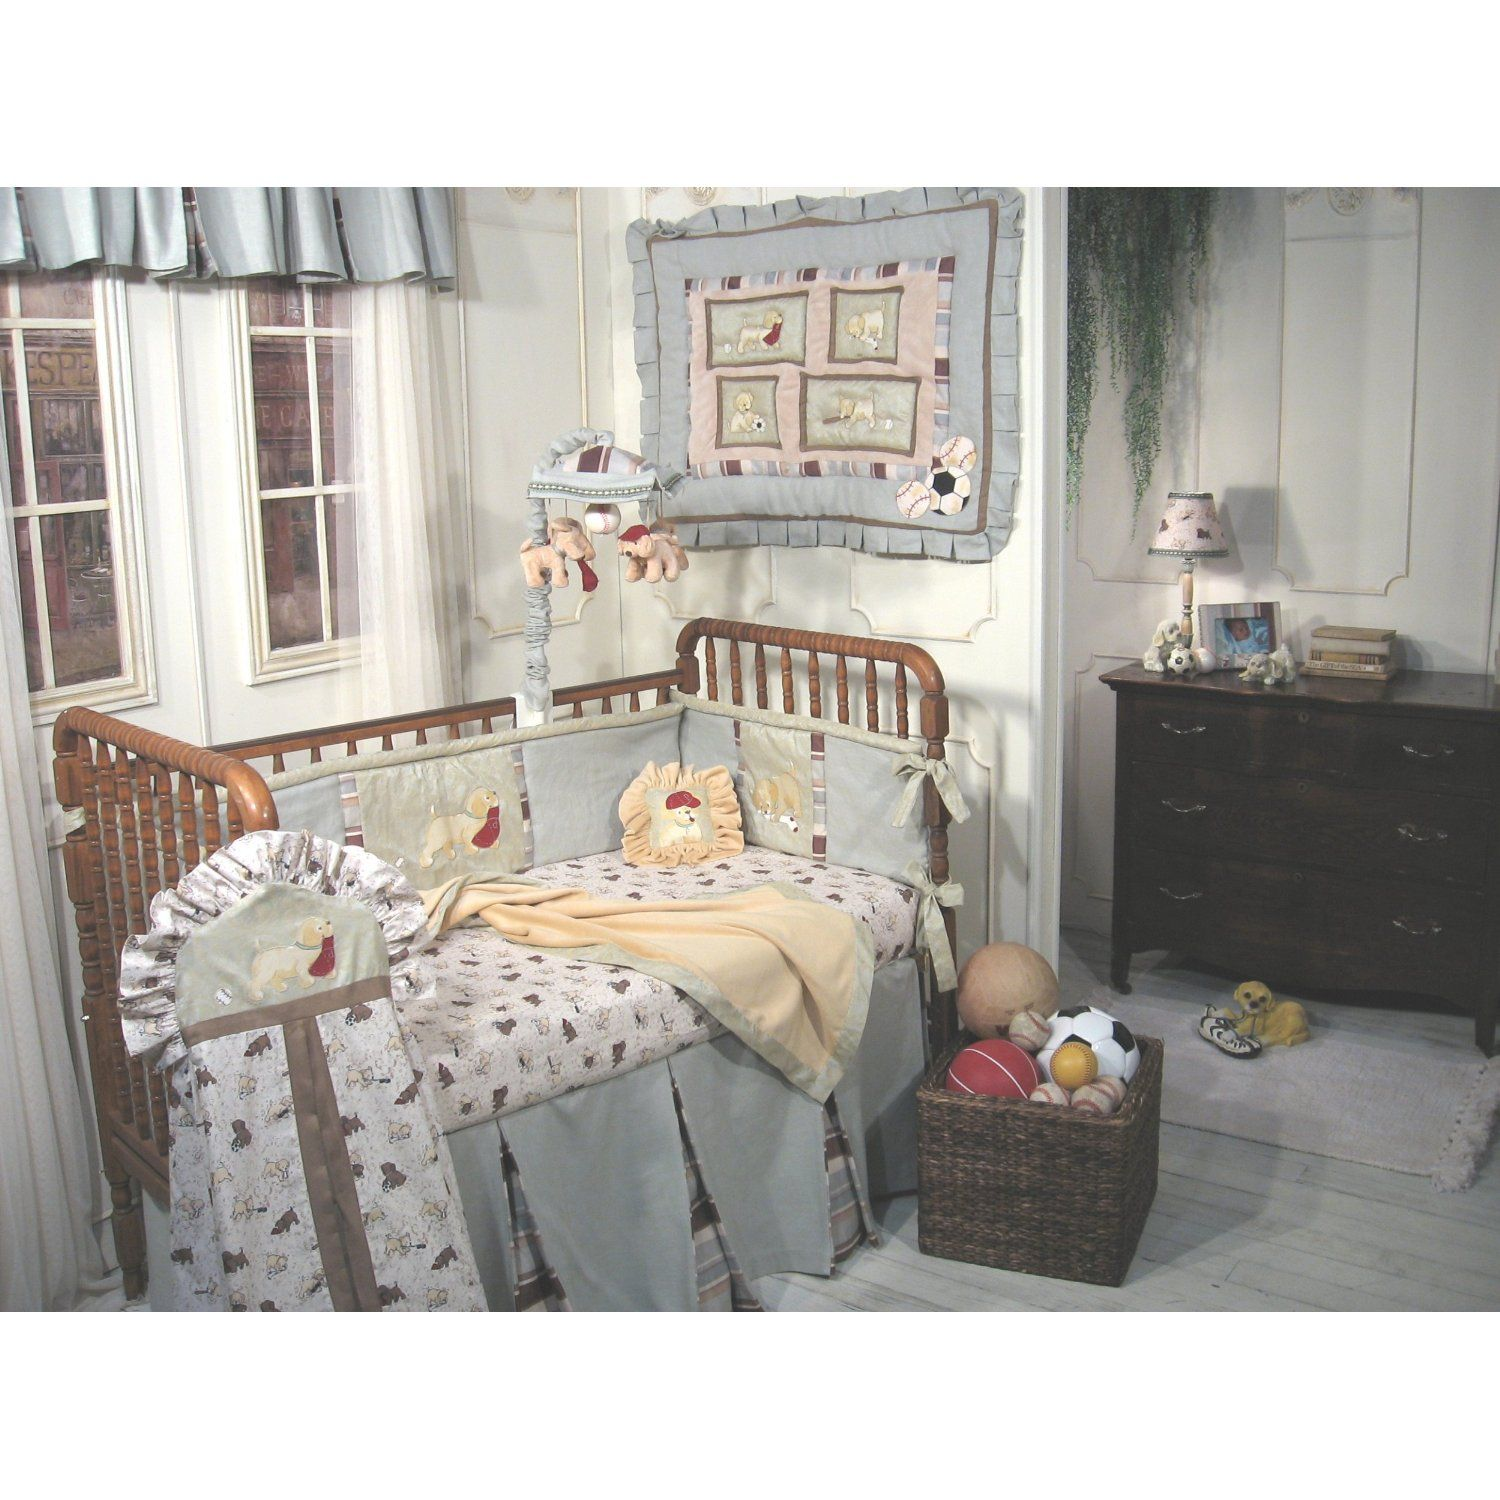 the cribs manufacturer to girl design bag size of nursery bars line ultimate sets carter crib baby pop nojo bedding set full bedroom glenna reviews puppy piece mod monkey guide bumper jean bunny and nautical grey carters discontinued kids pink pod a